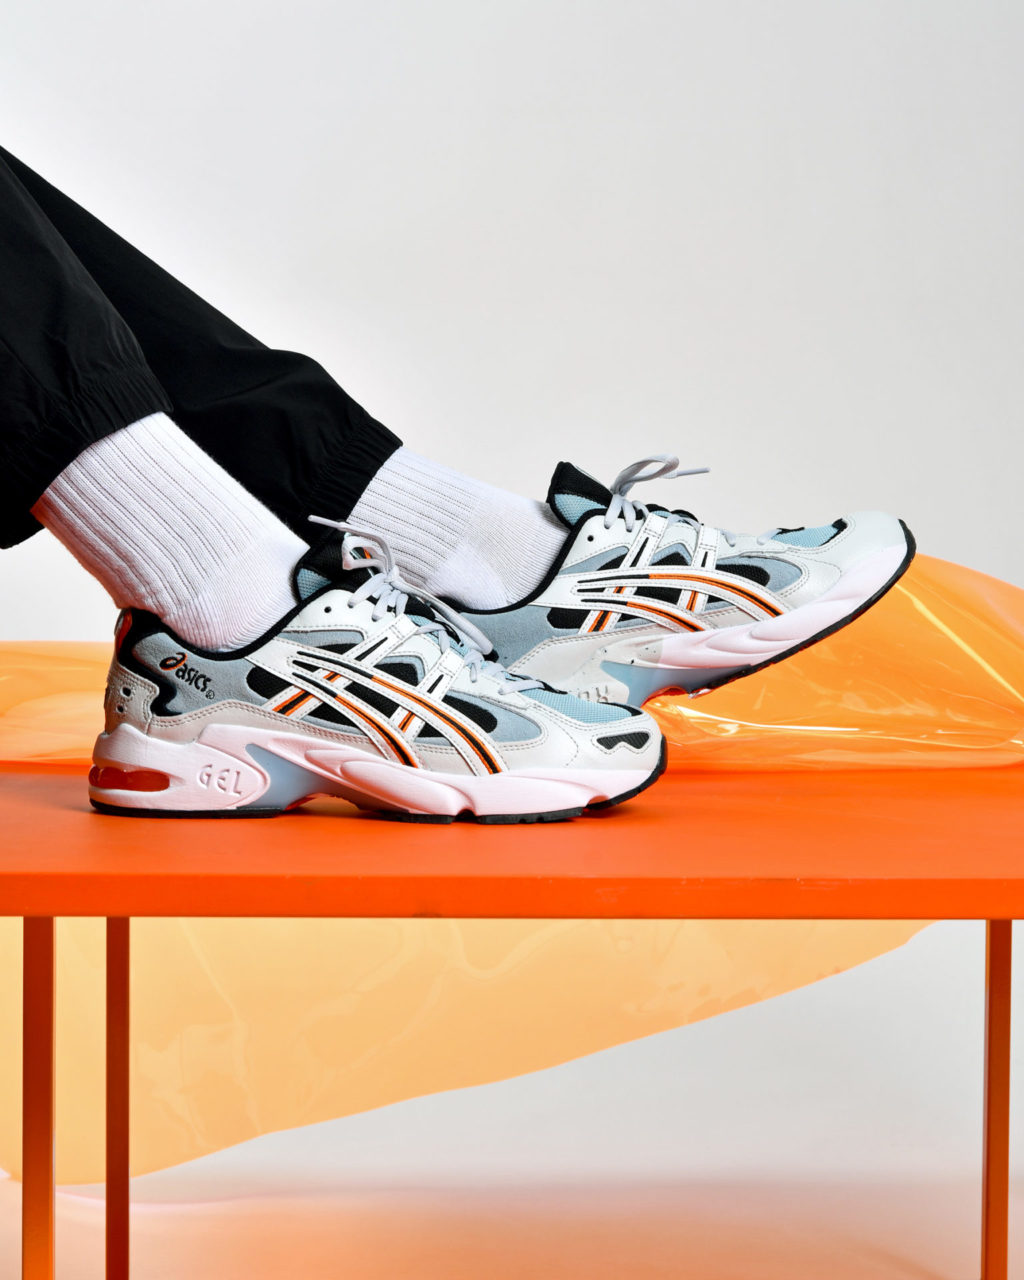 Asics Gel Kayano 5 Polar Shade